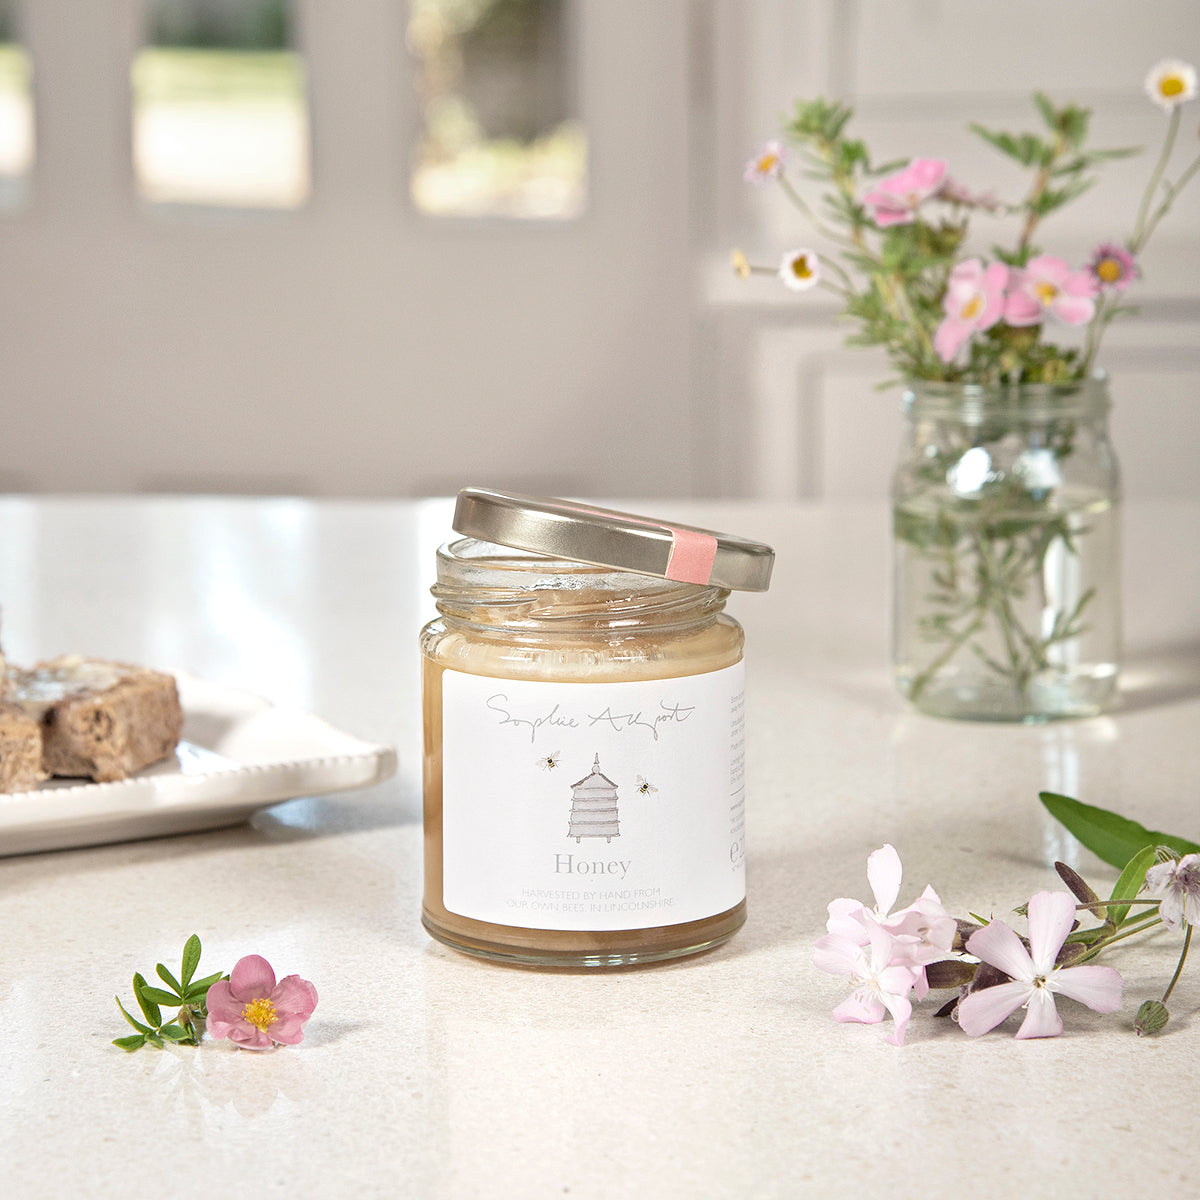 Baker's British Honey by Sophie Allport